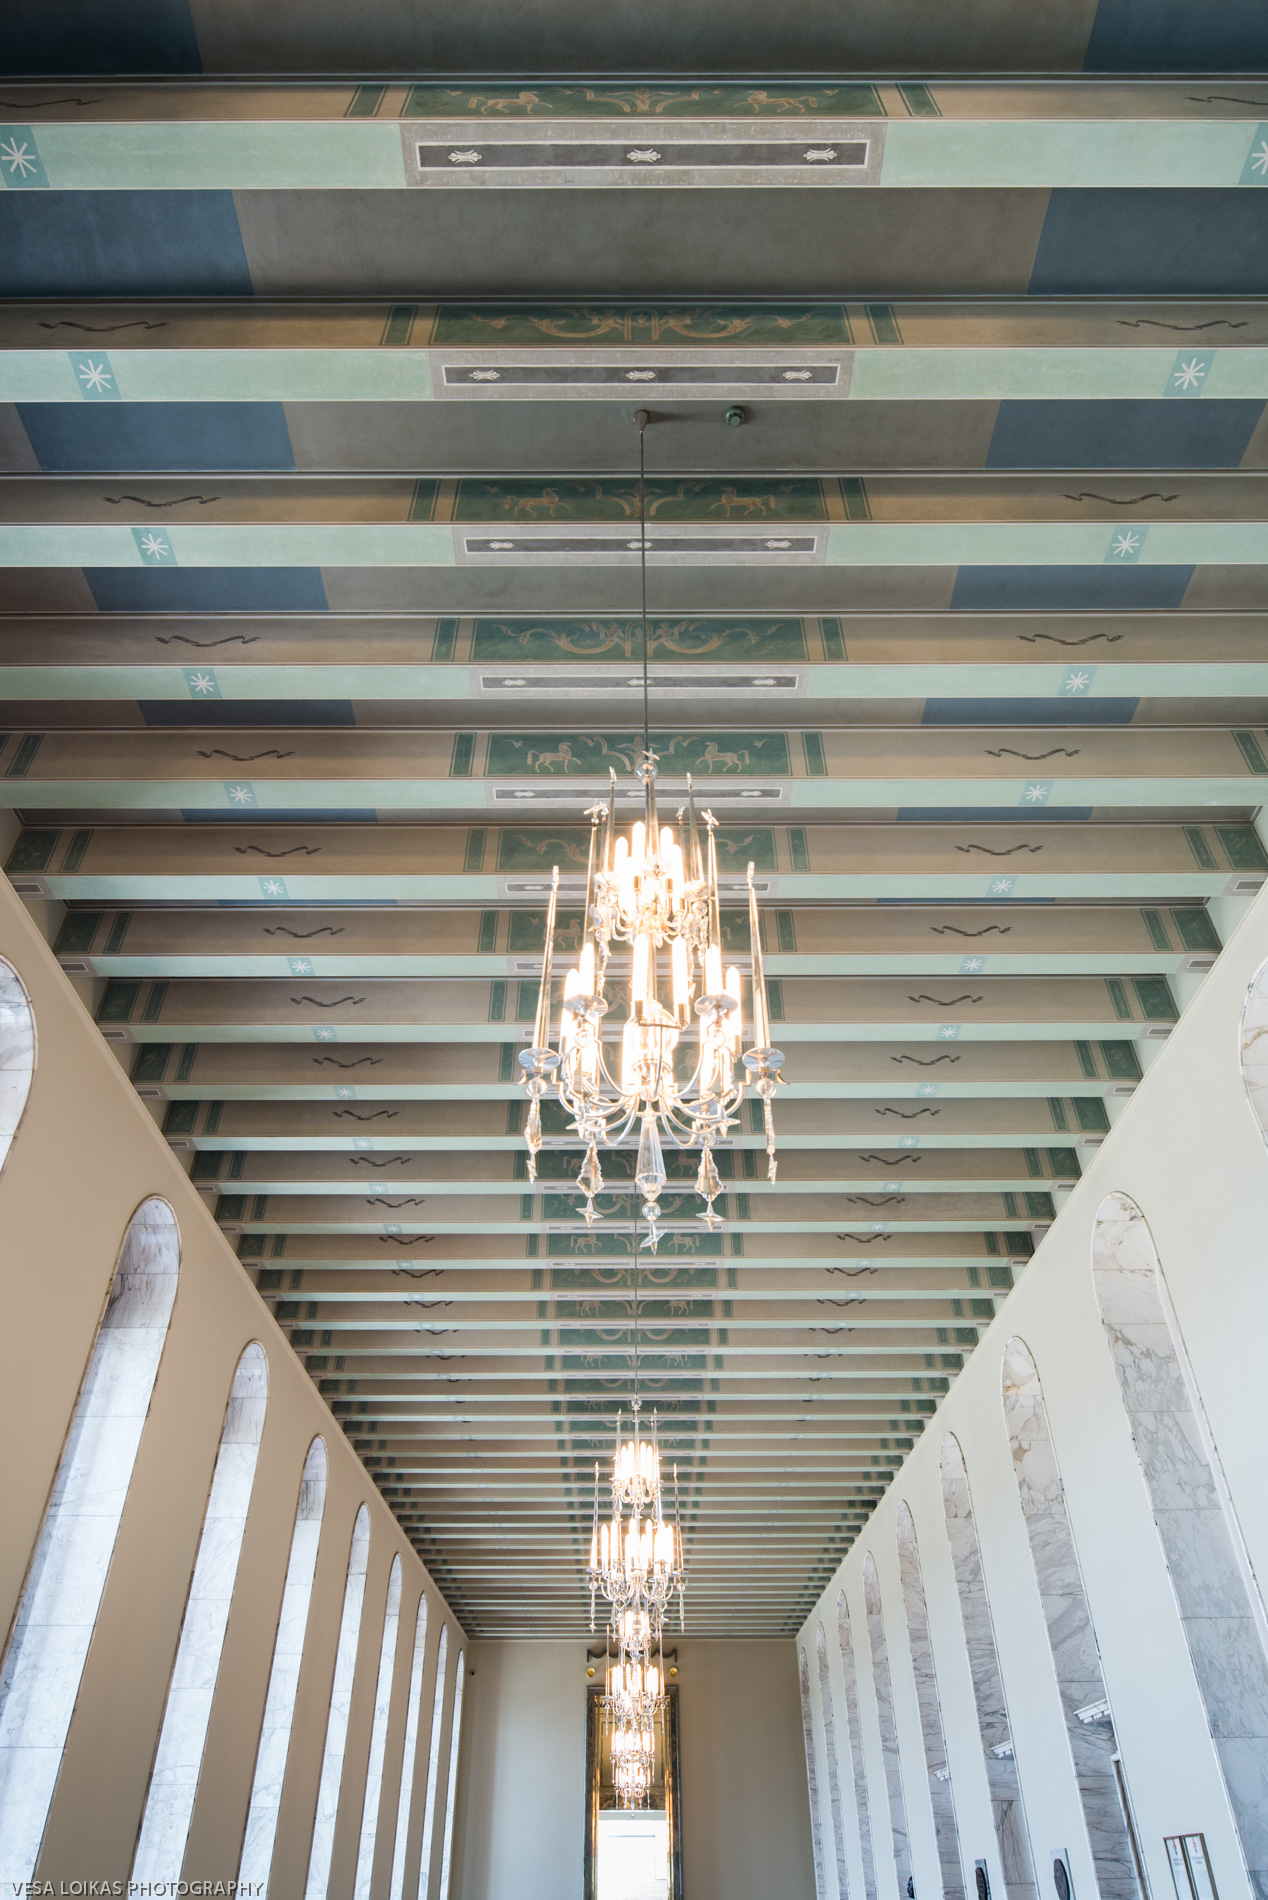 The hall of state (valtiosali) with its decorative ceiling and light fixtures.